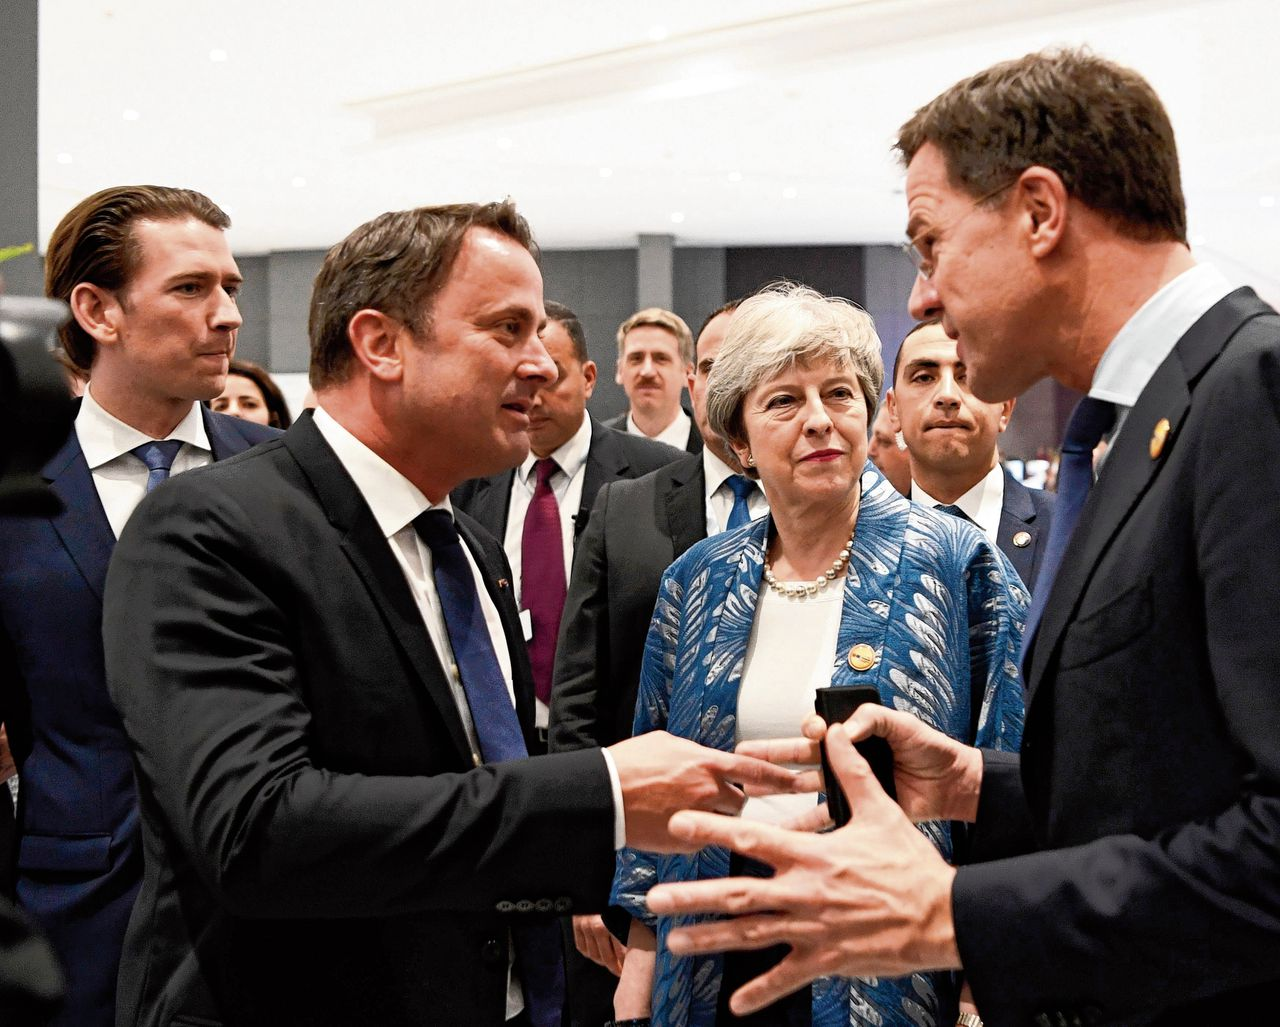 Theresa May in gesprek met Mark Rutte in Egypte.